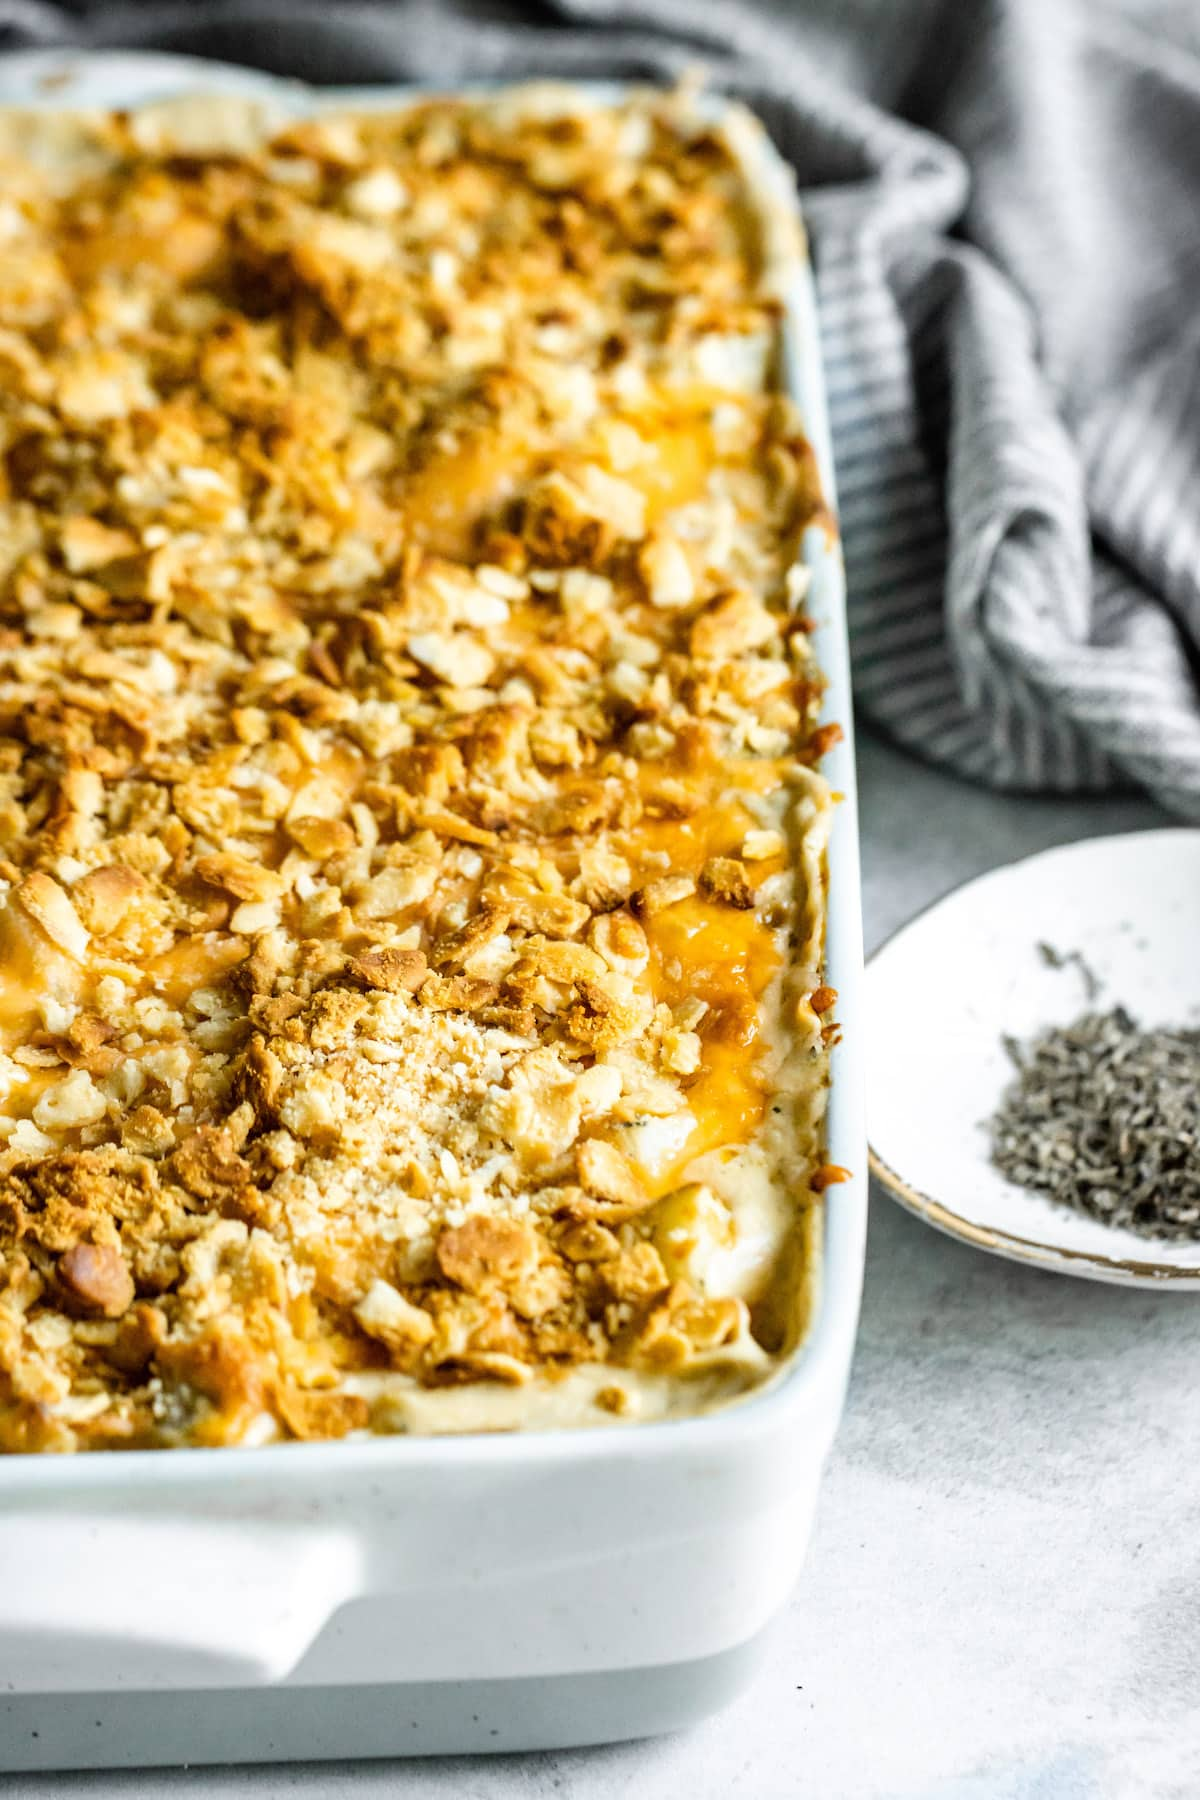 Hashbrown casserole topped with crushed croutons.